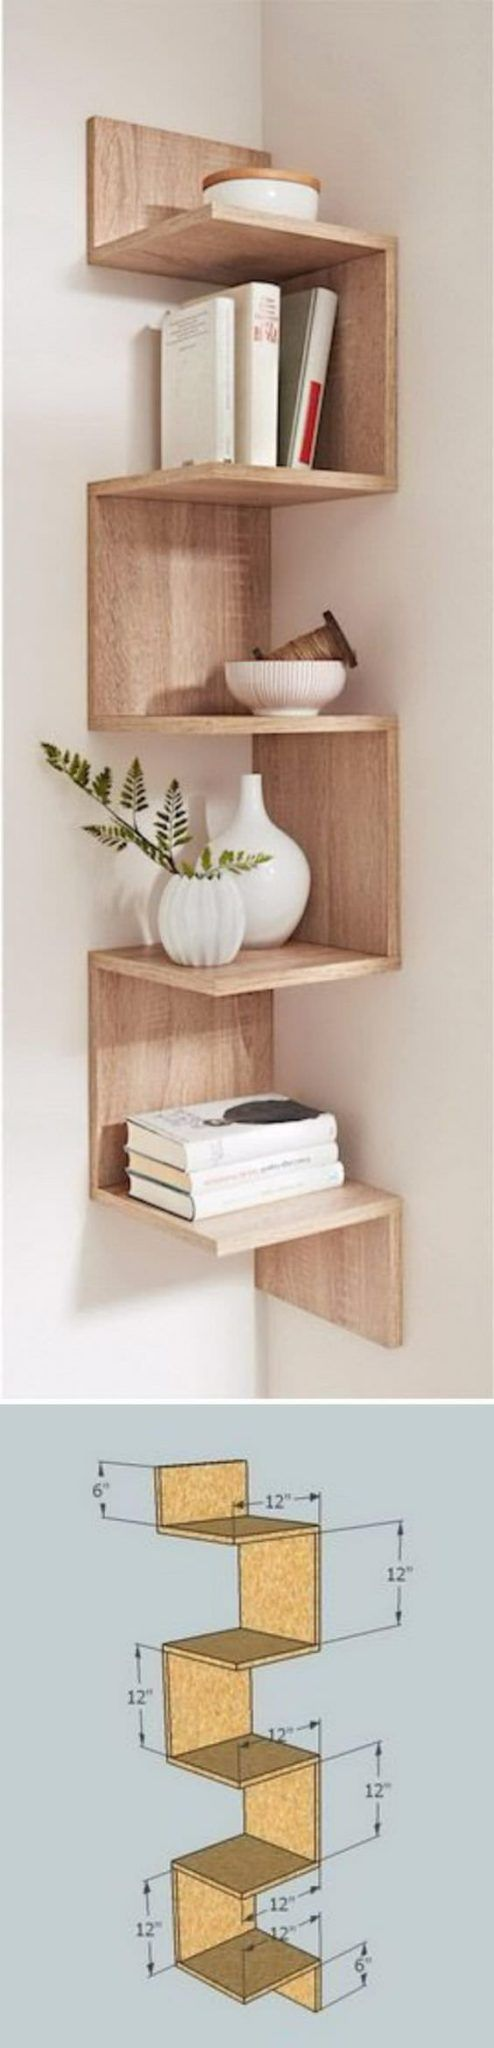 Neat nook idea to store some cookbooks or dishes near the kitchen?